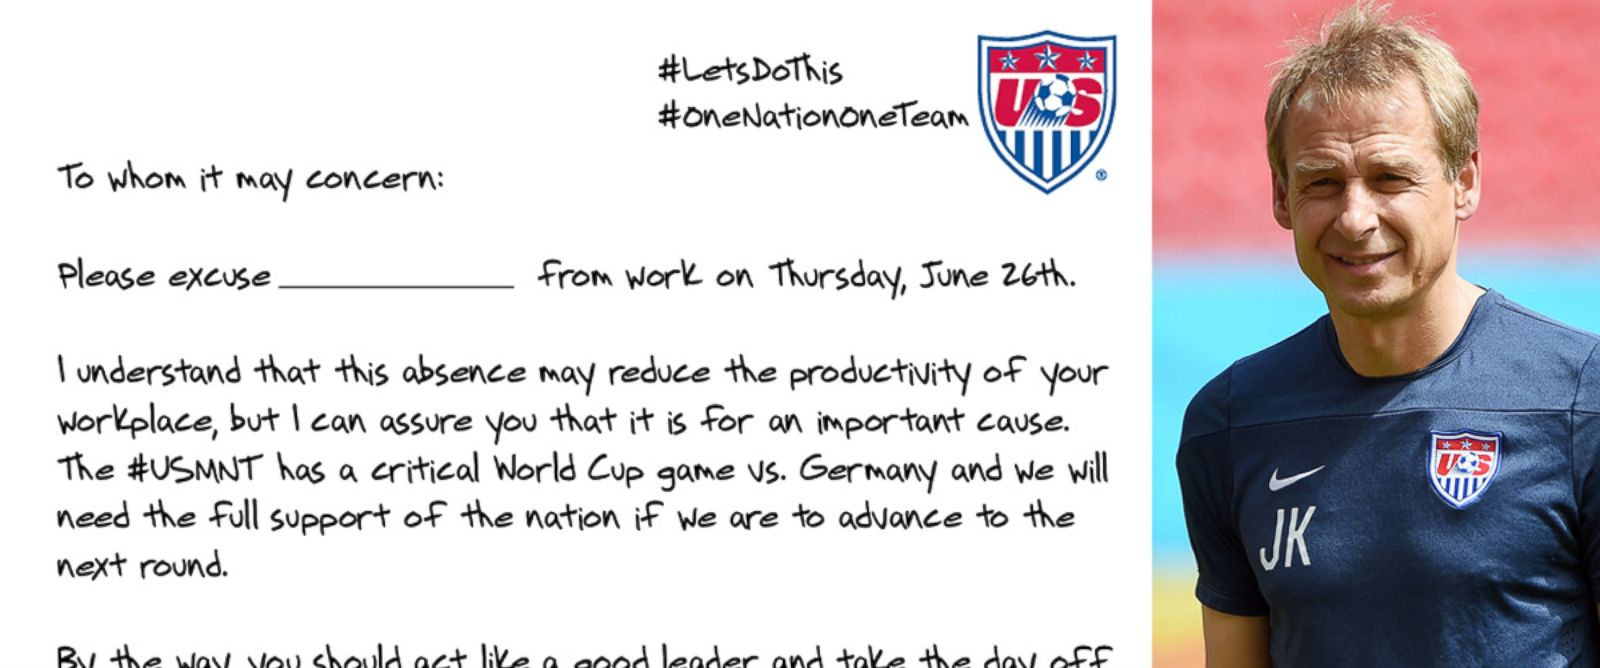 "PHOTO: U.S. Soccer tweeted this image of a letter from Coach Jurgen Klinsmann, pictured right in Recife on June 25, 2014, with the text, ""Need note to get out of work Thurs? @J_Klinsmann has you covered. Show your cool boss. It will def work! #LetsDoThis"""